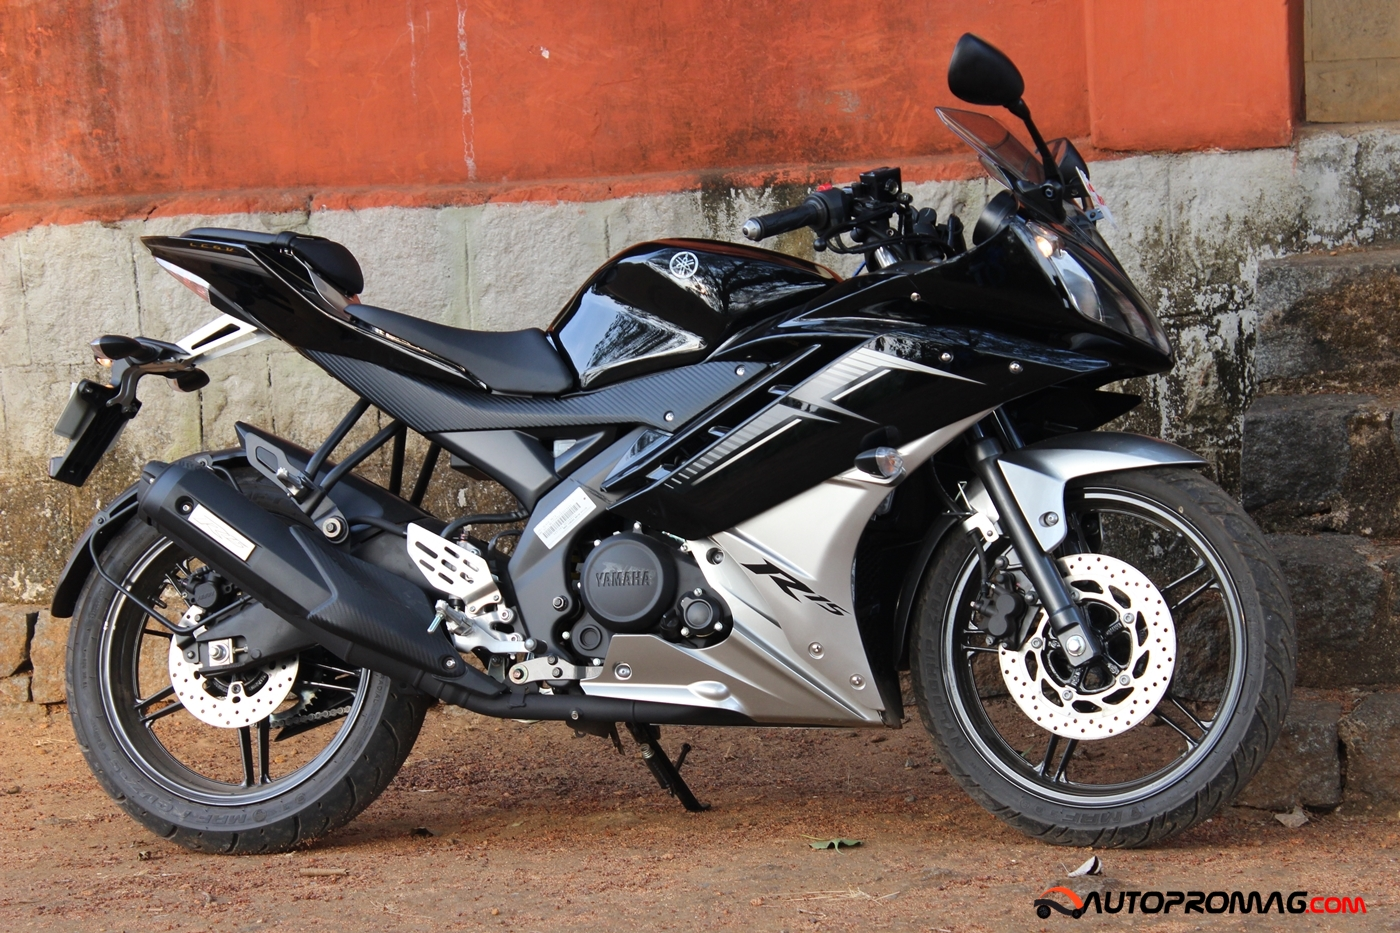 Cbr Honda Bike >> Yamaha R15 V2 vs Honda CBR 150r - The Ultimate Review - Autopromag